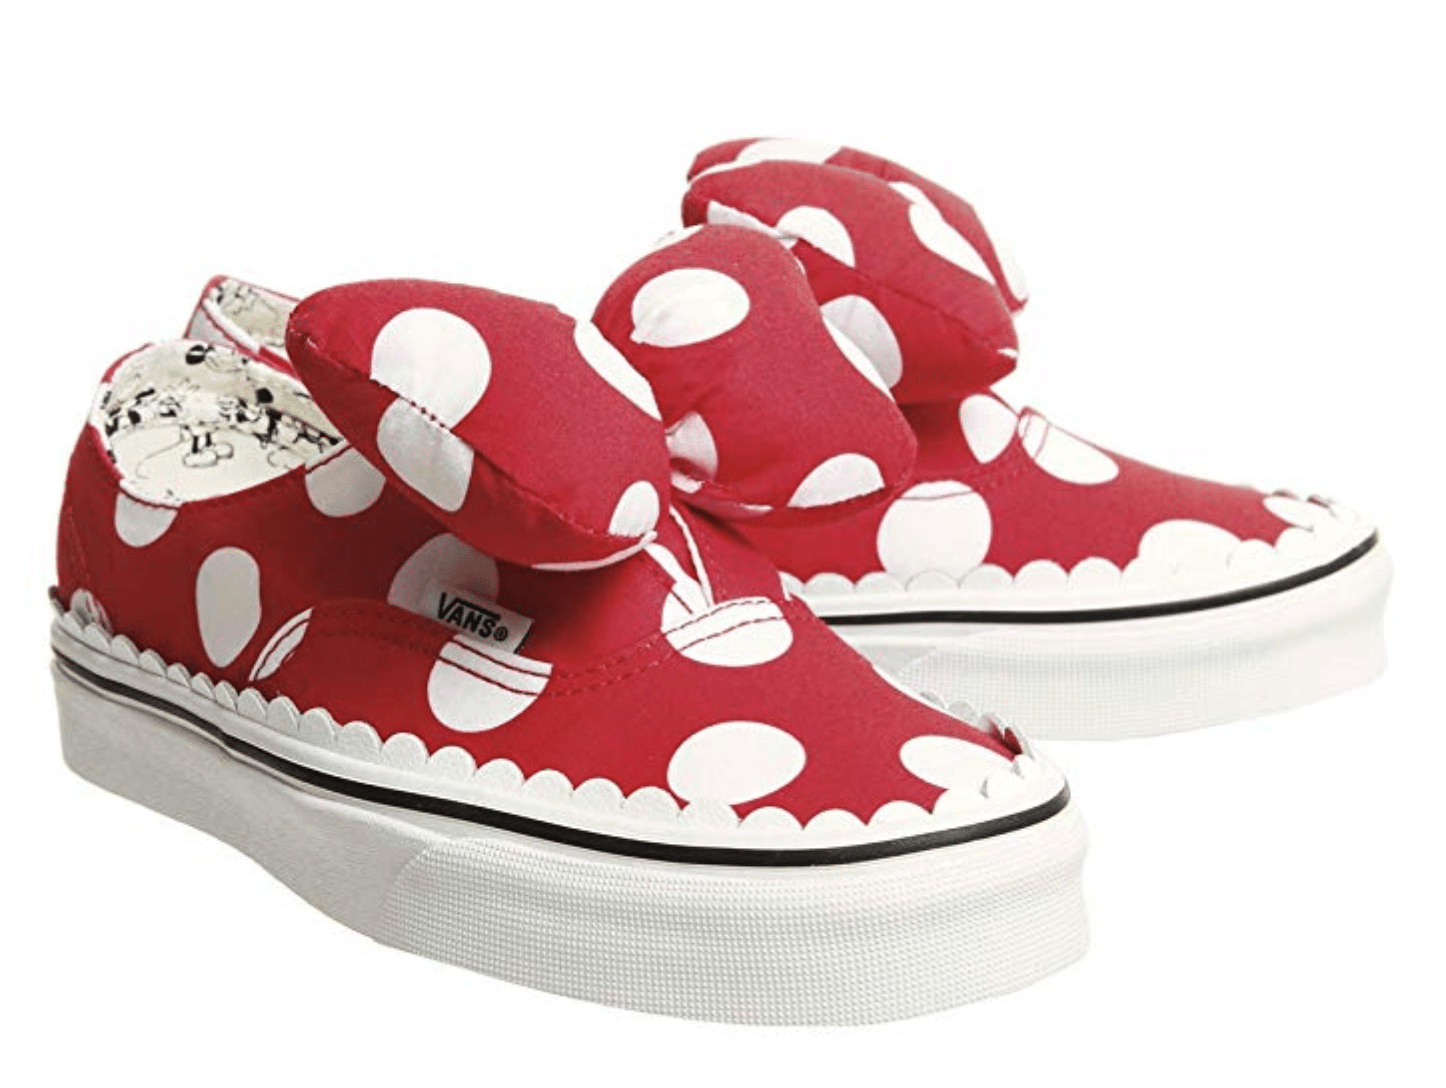 38691198e8 The Best Shoes to Wear at Walt Disney World • WDW Vacation Tips